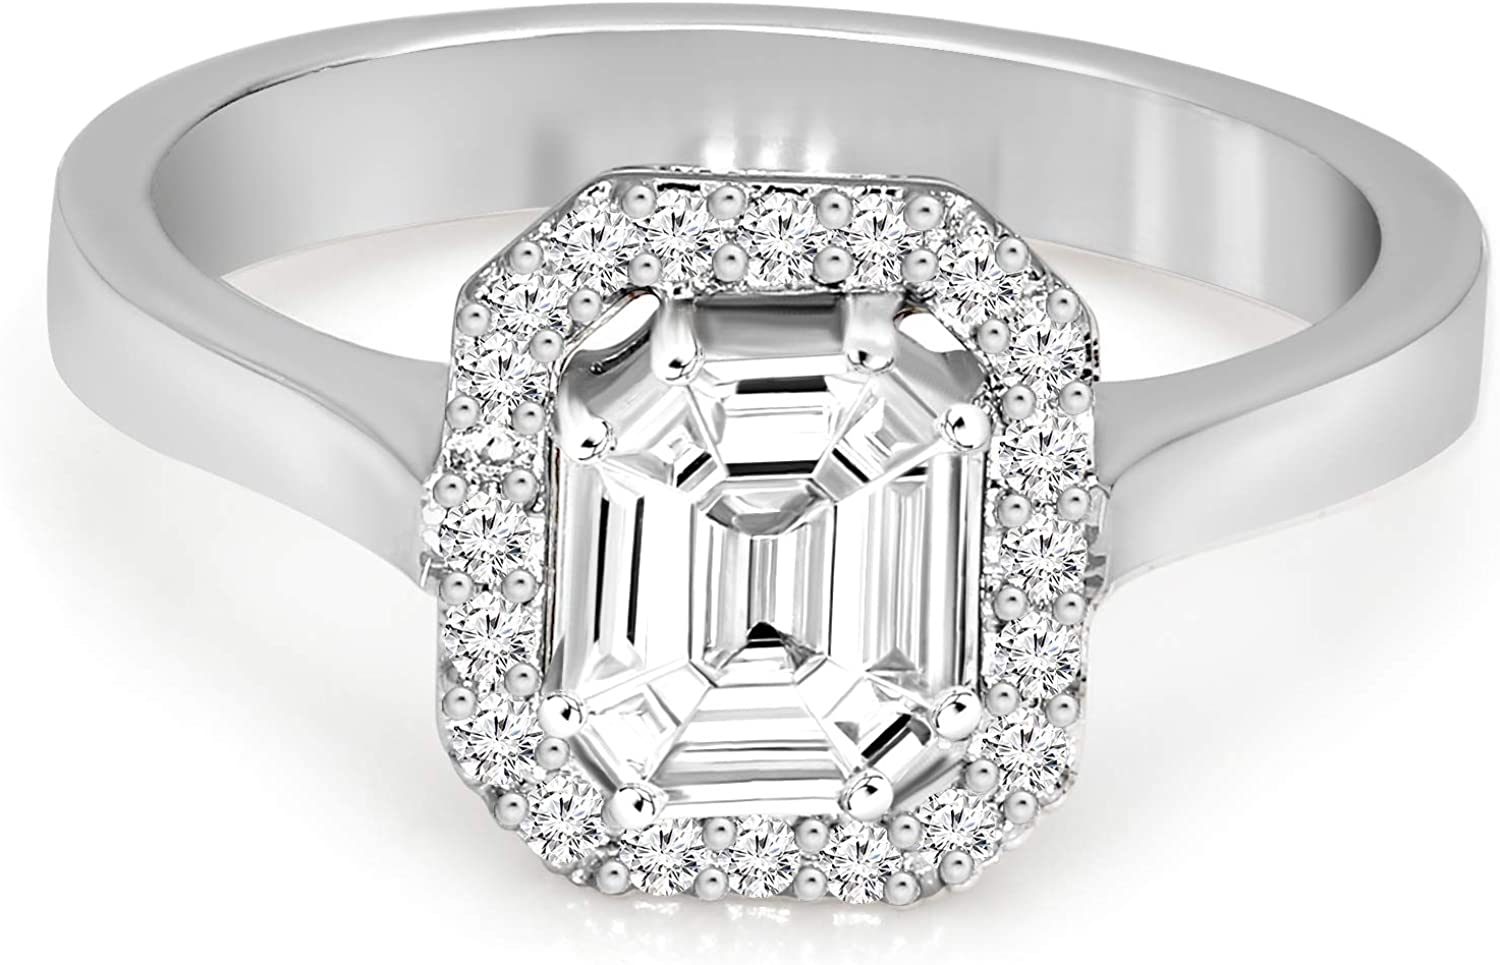 Mothers Day Gifts IGI Certified Natural Diamond Rings 14K White Gold 1/2 carat-5/8 carat 100% Real Diamond Pie Cut Halo Ring For Women (1/2 carat-5/8 CTTW, GH - SI1 Quality Gifts for Mom)